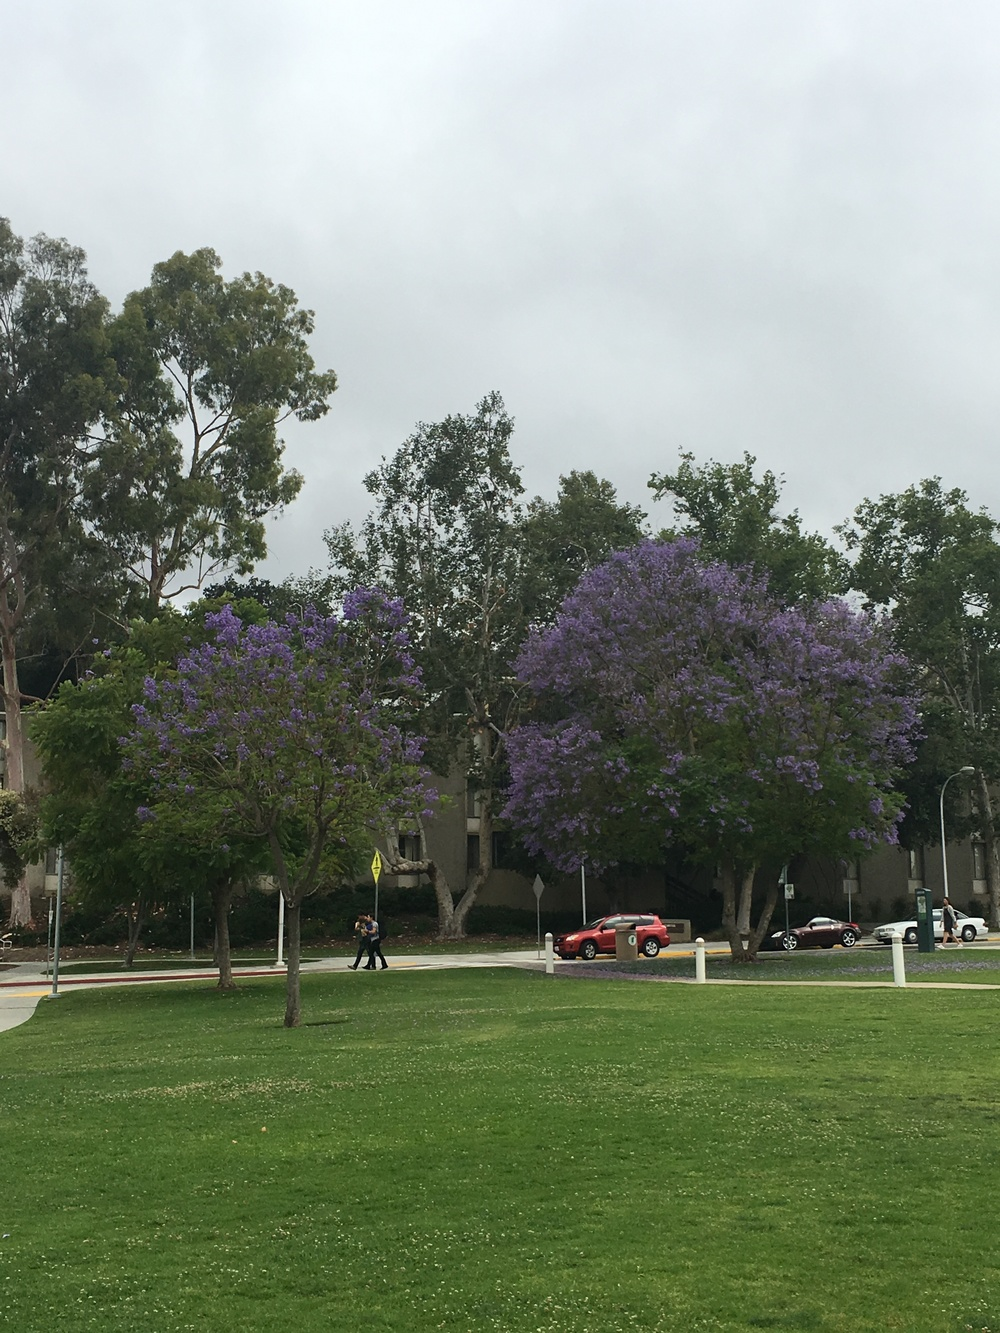 Jacarandas in bloom all around campus!